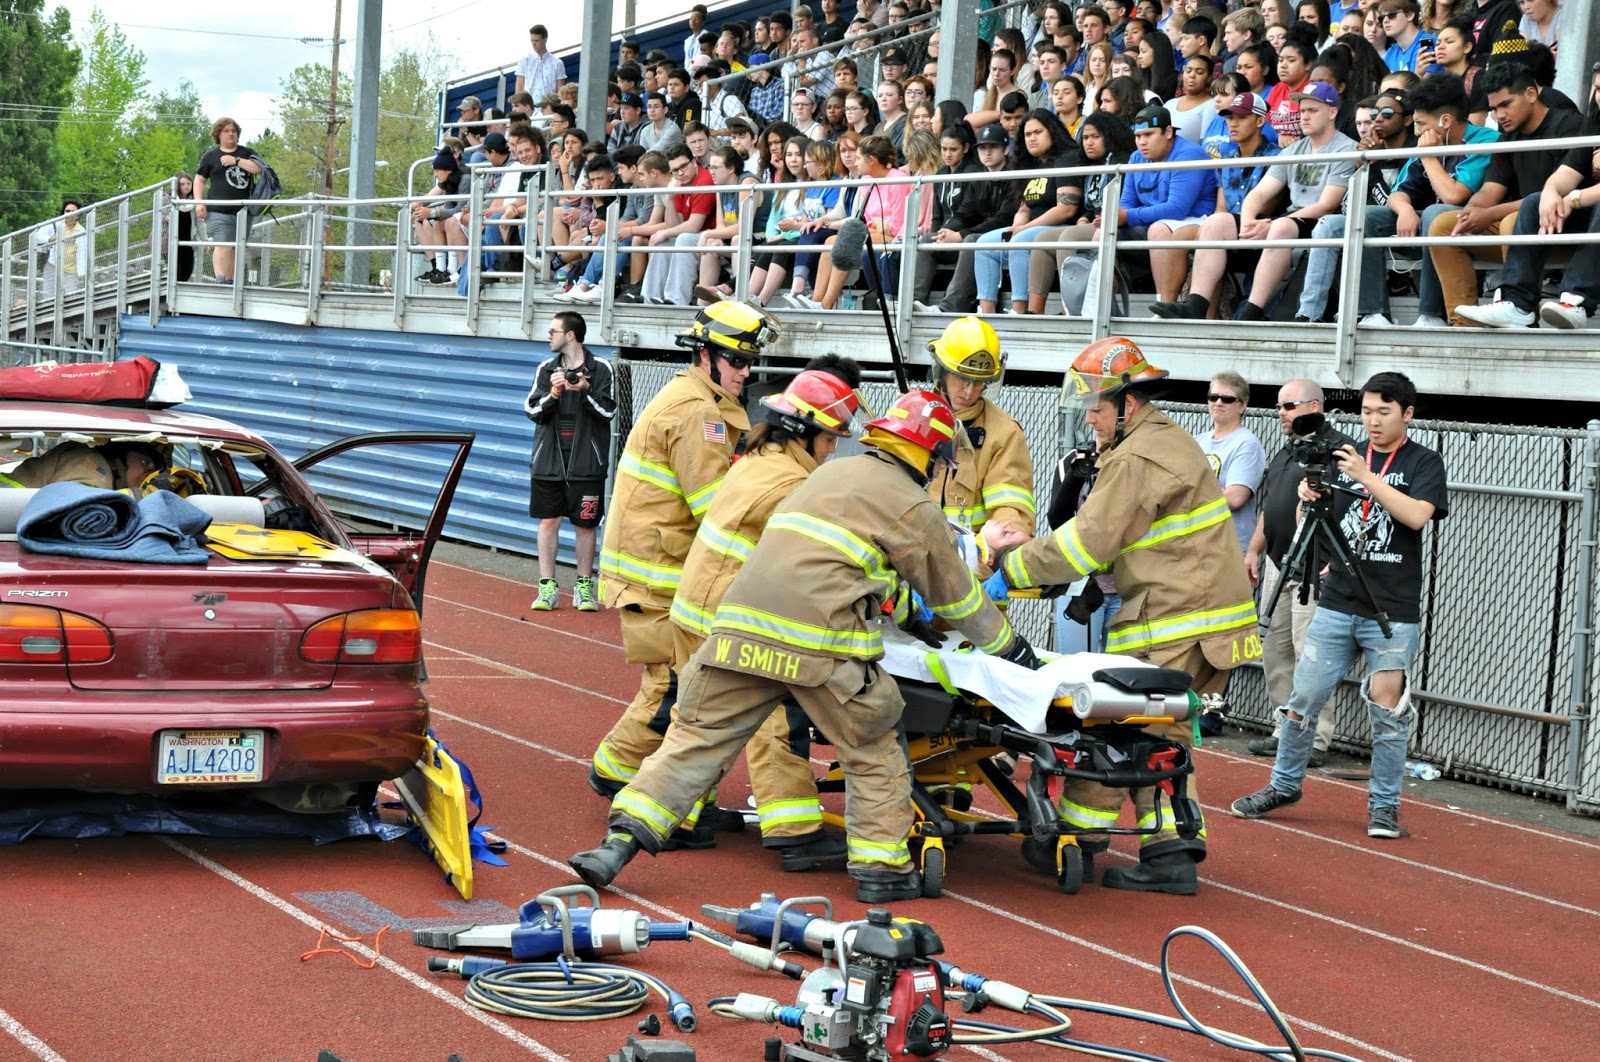 Tacoma Fire Department: Mock DUI simulation brings safety